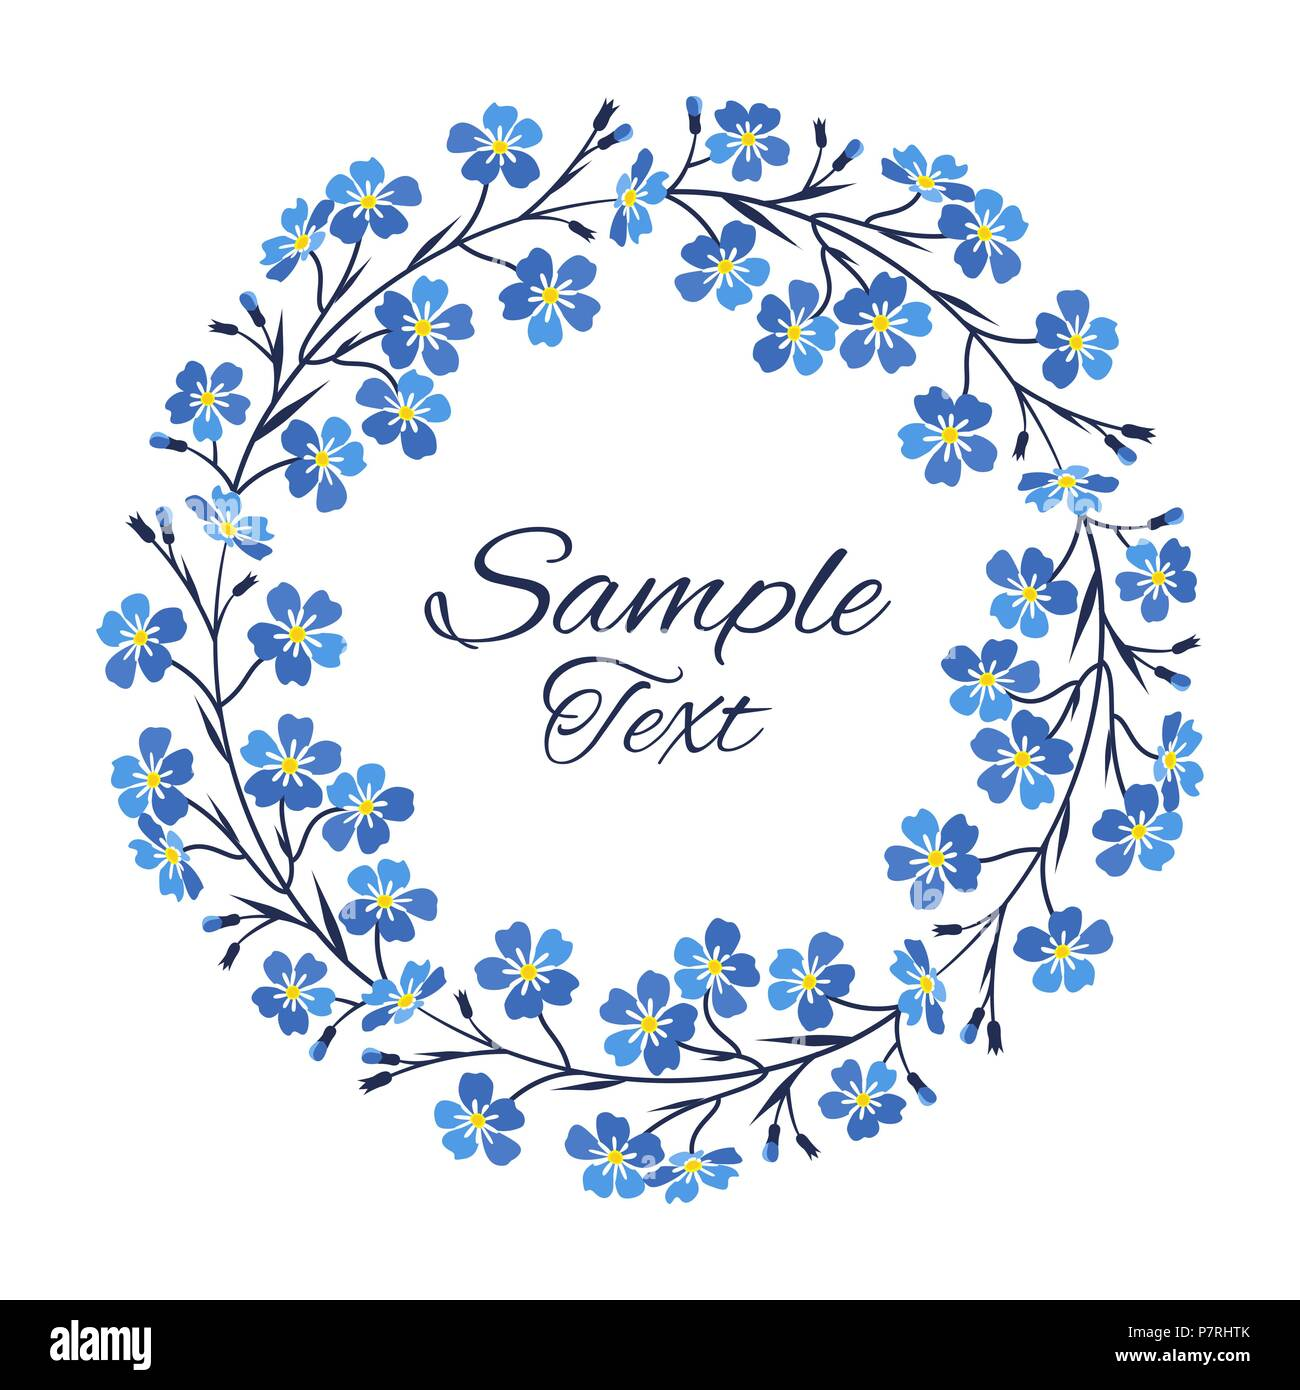 Vector illustration blue flowers wreath of blue forget me not vector illustration blue flowers wreath of blue forget me not flowers izmirmasajfo